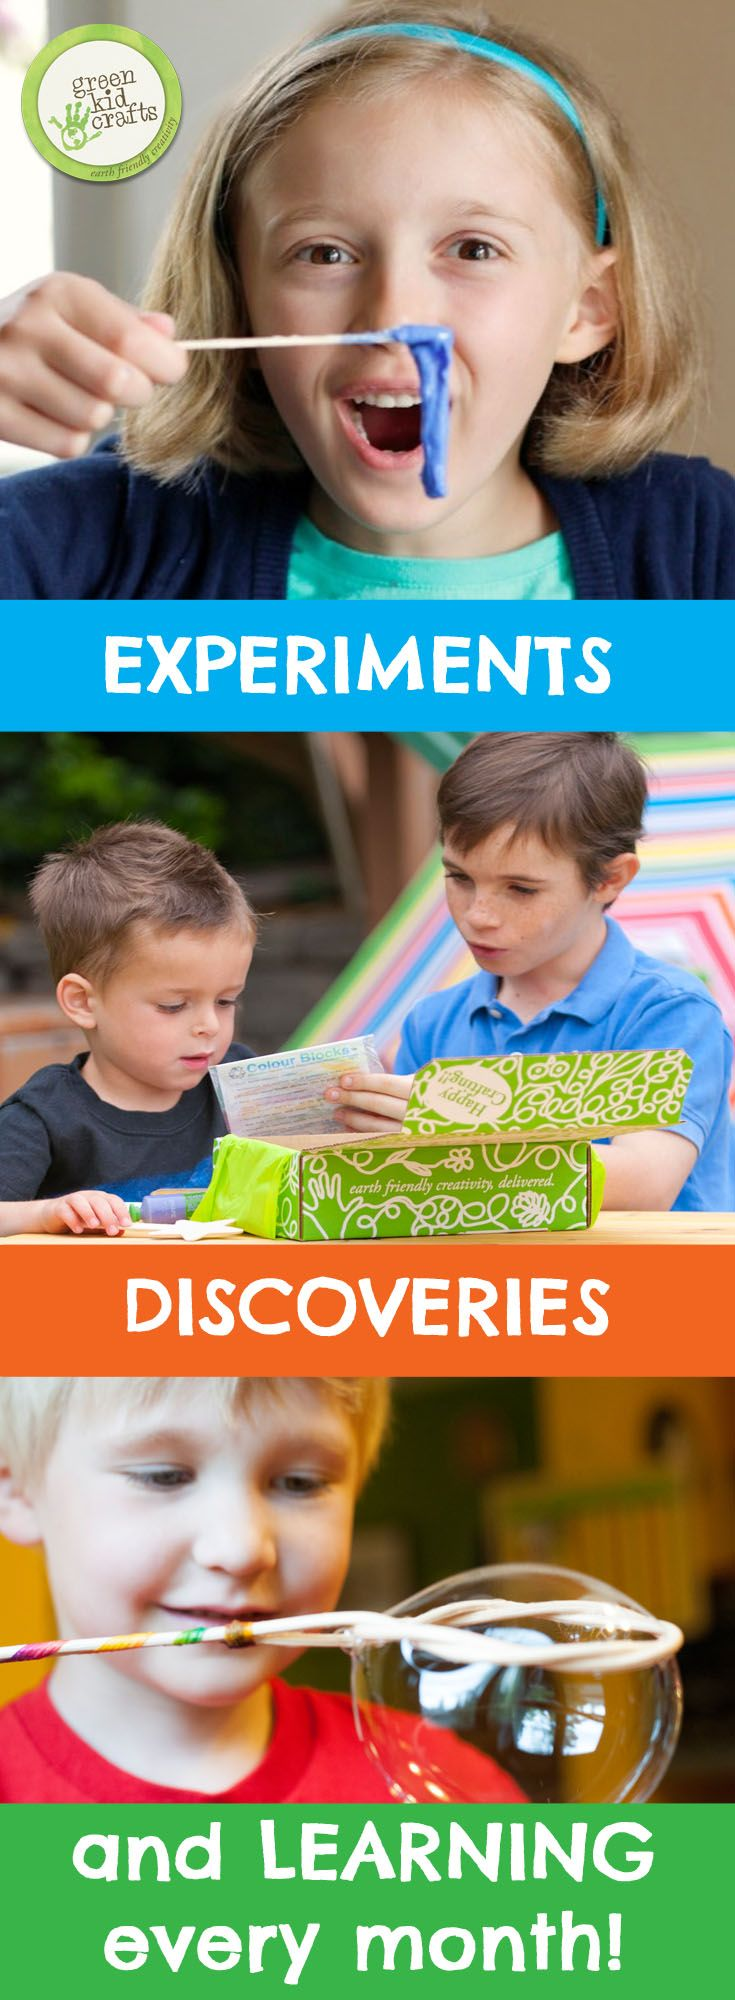 Give the gift of monthly STEM and Creativity Kits designed to spark creativity and curiosity from Green Kid Crafts.